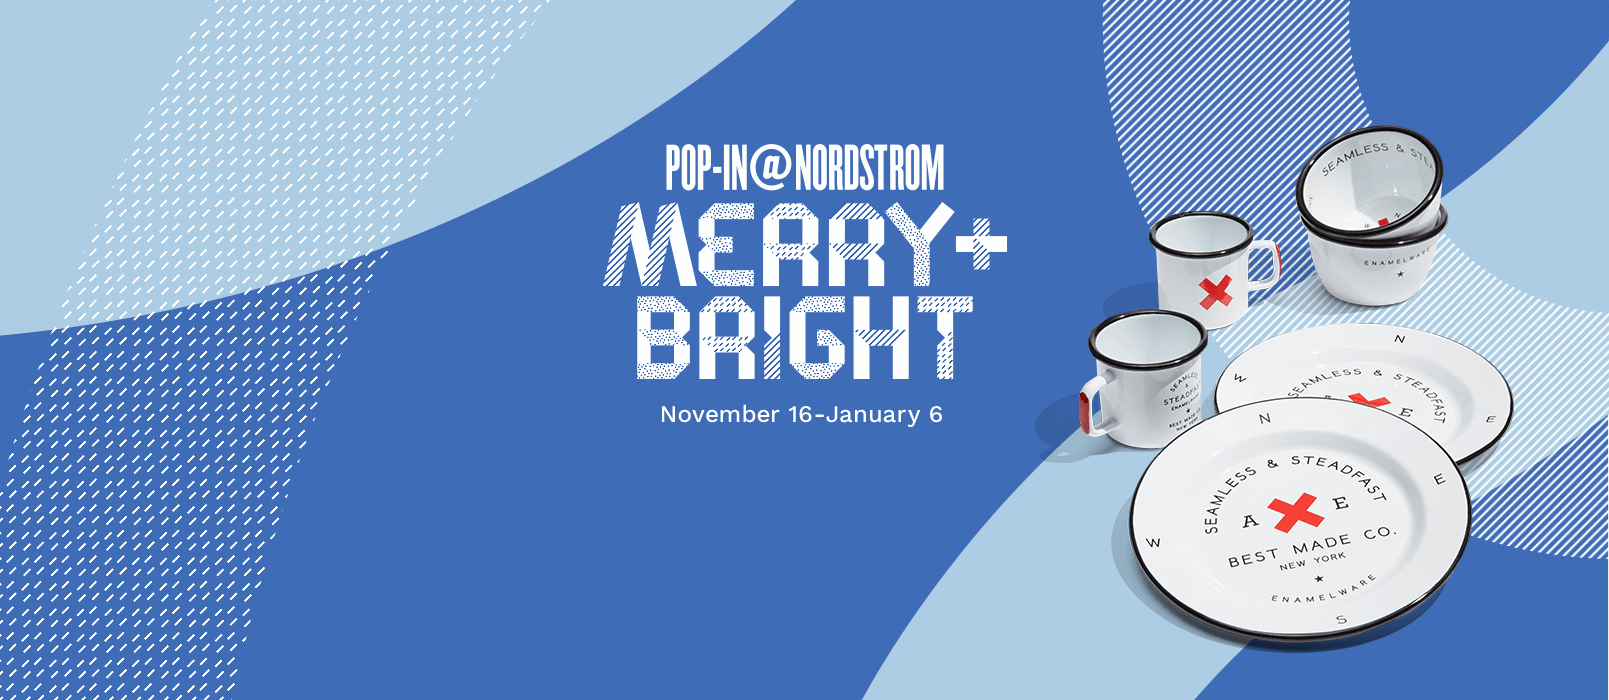 Pop-In@Nordstrom Merry+Bright. November 16 to January 6.